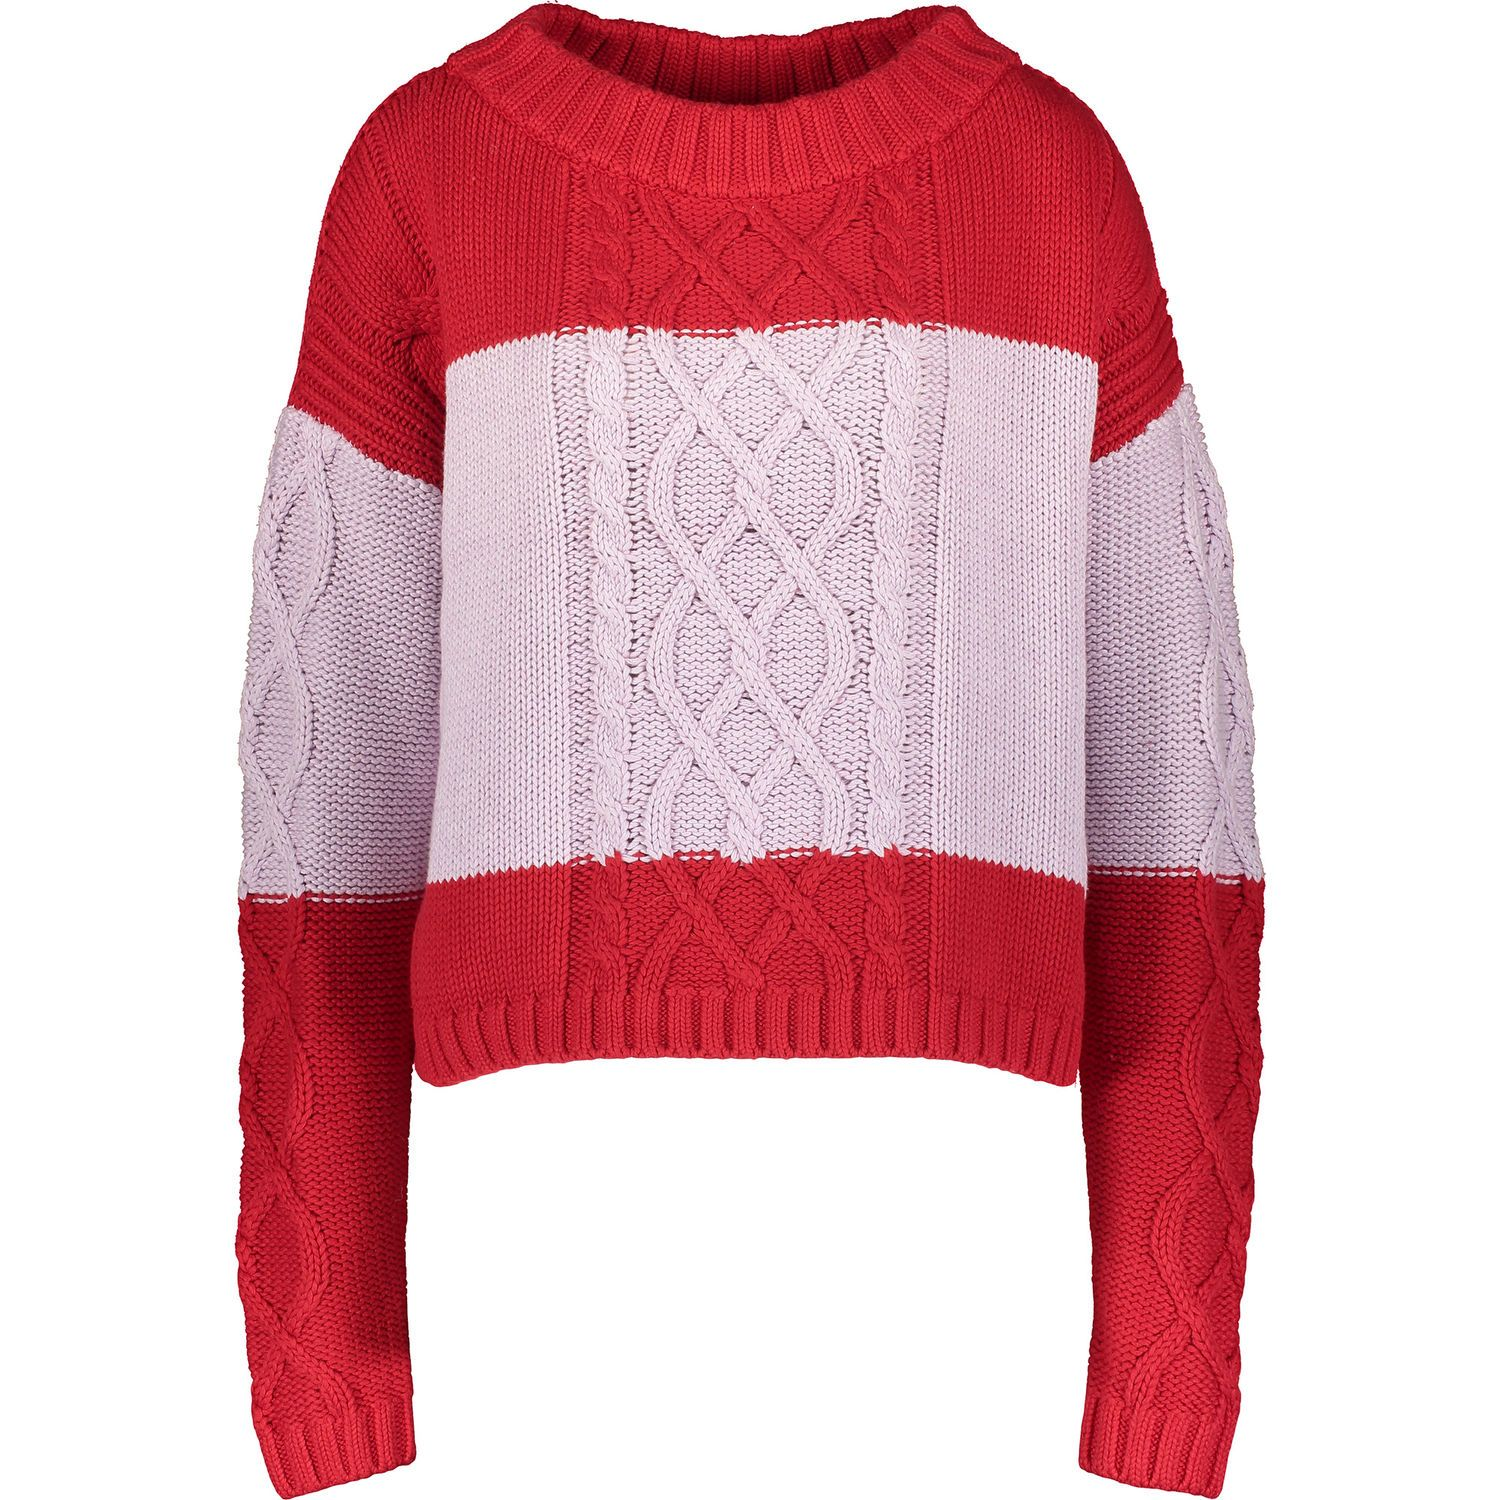 6fed810545 Red   Pink Cable Knit Jumper - Women s Contemporary Designers - Edits ...